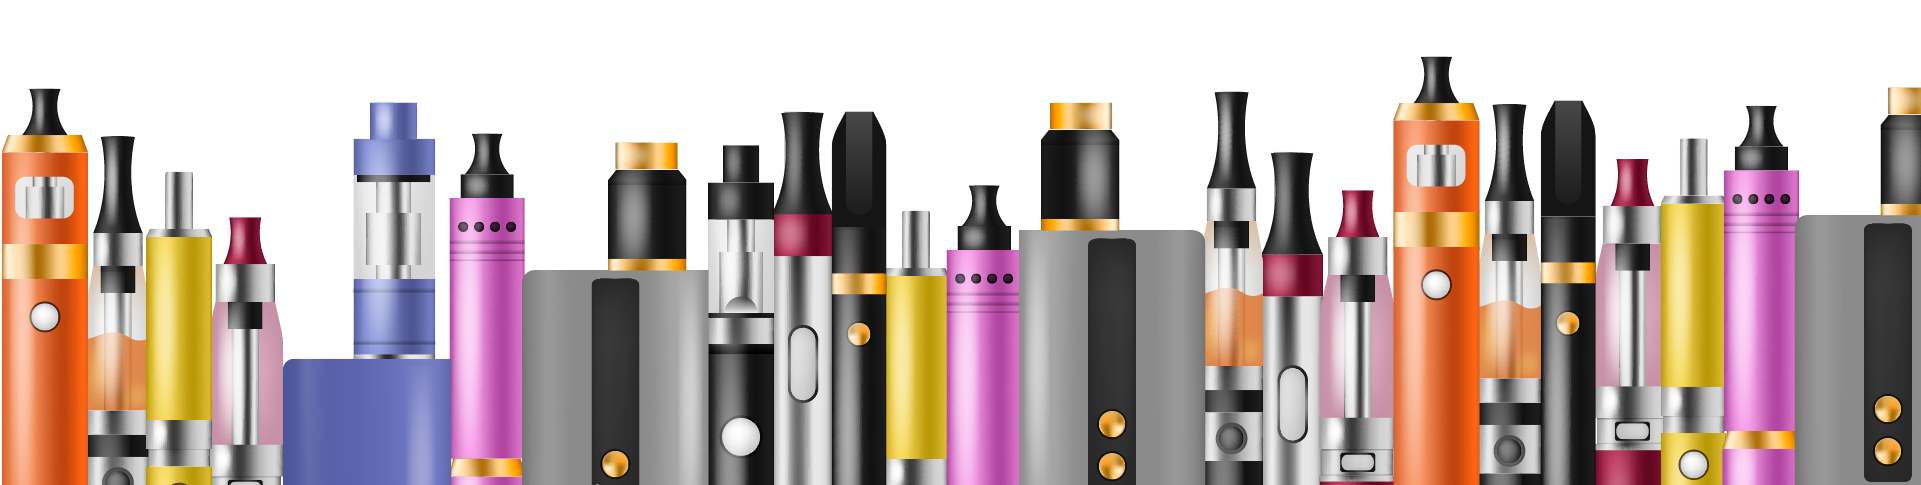 The e-cigarette in all its magnificence